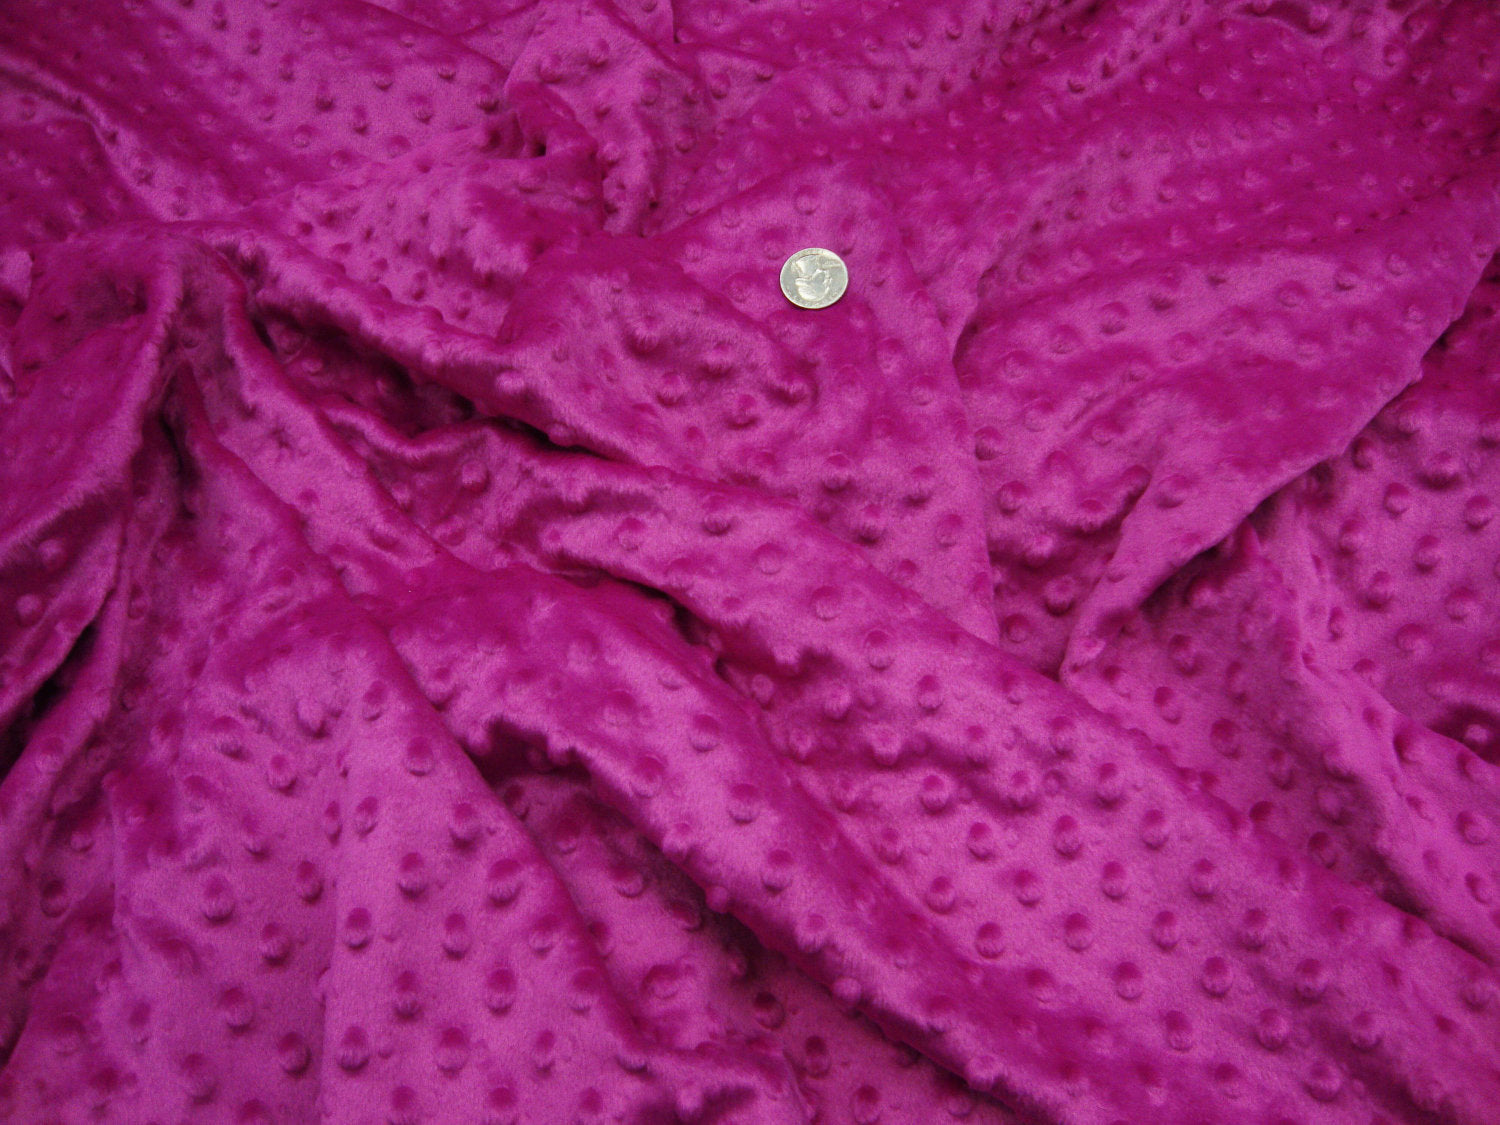 Dark Fuchsia Soft Minky Dimple Dot Faux Fur Fabric 60"